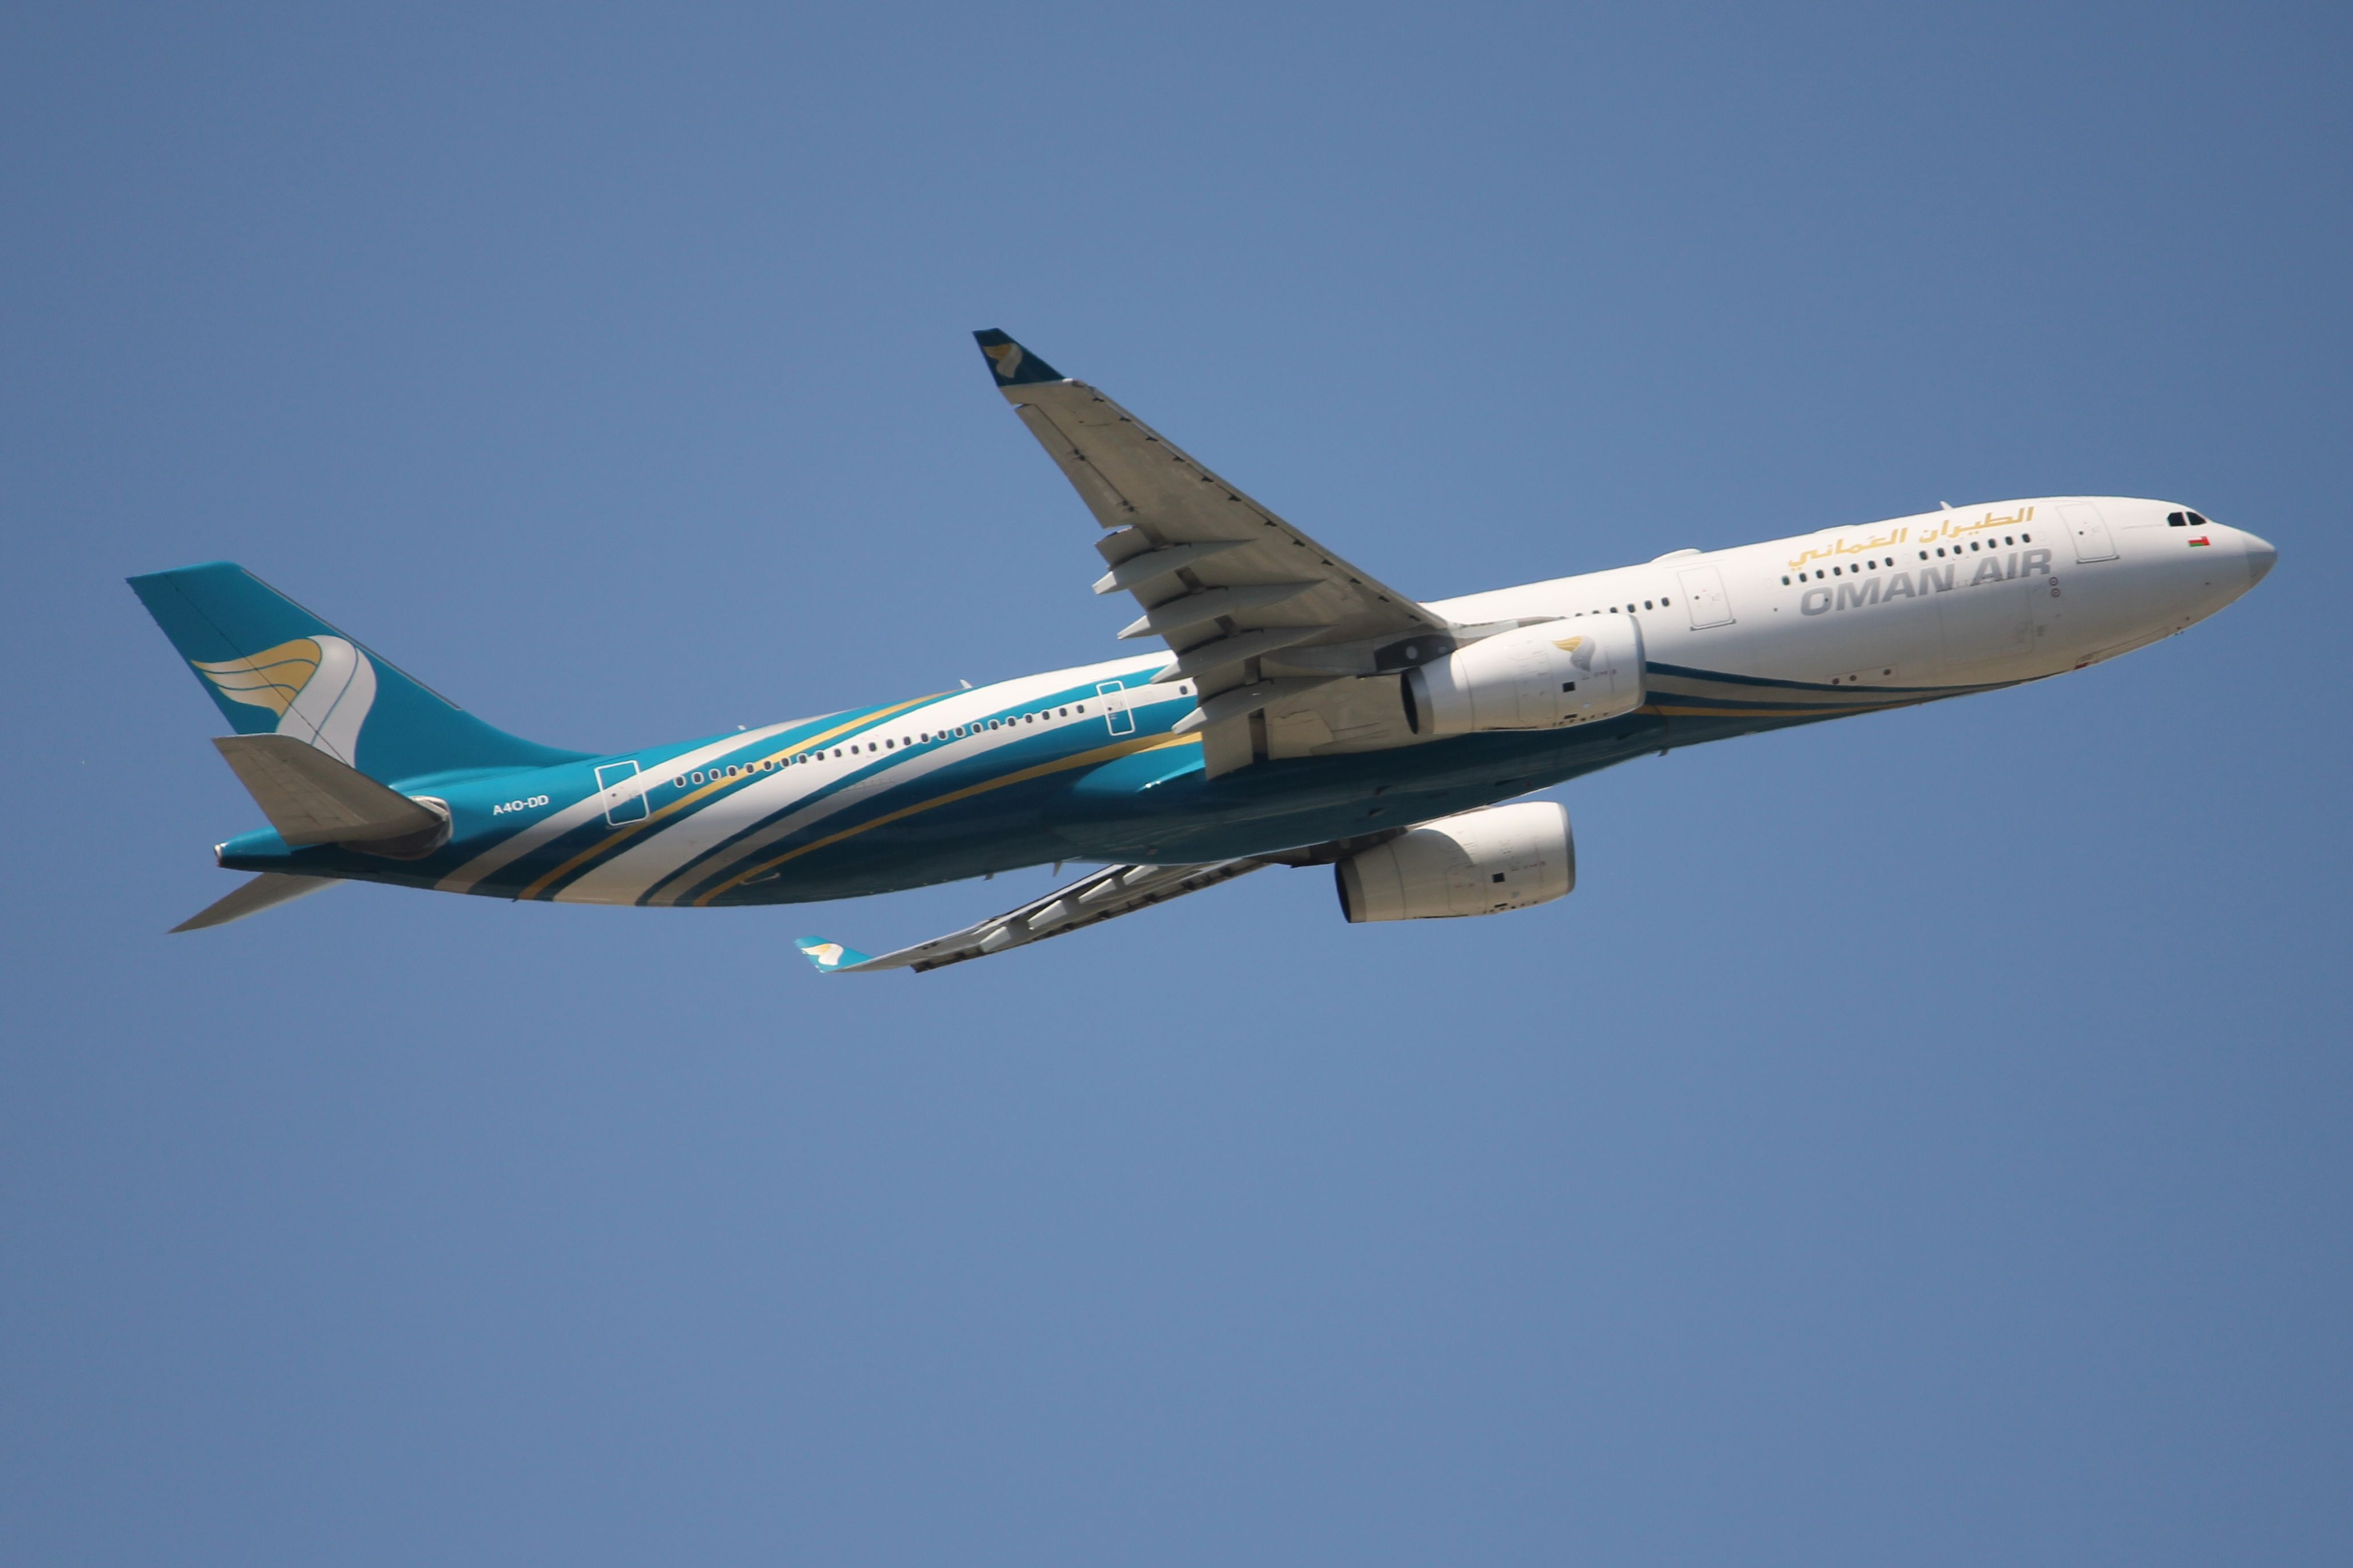 Carlton Leisure offers great deals on Oman Air flghts. See our cheapest airline fares to destination of your choice and fly with Oman Air.   http://www.carltonleisure.com/airlines/oman-air/